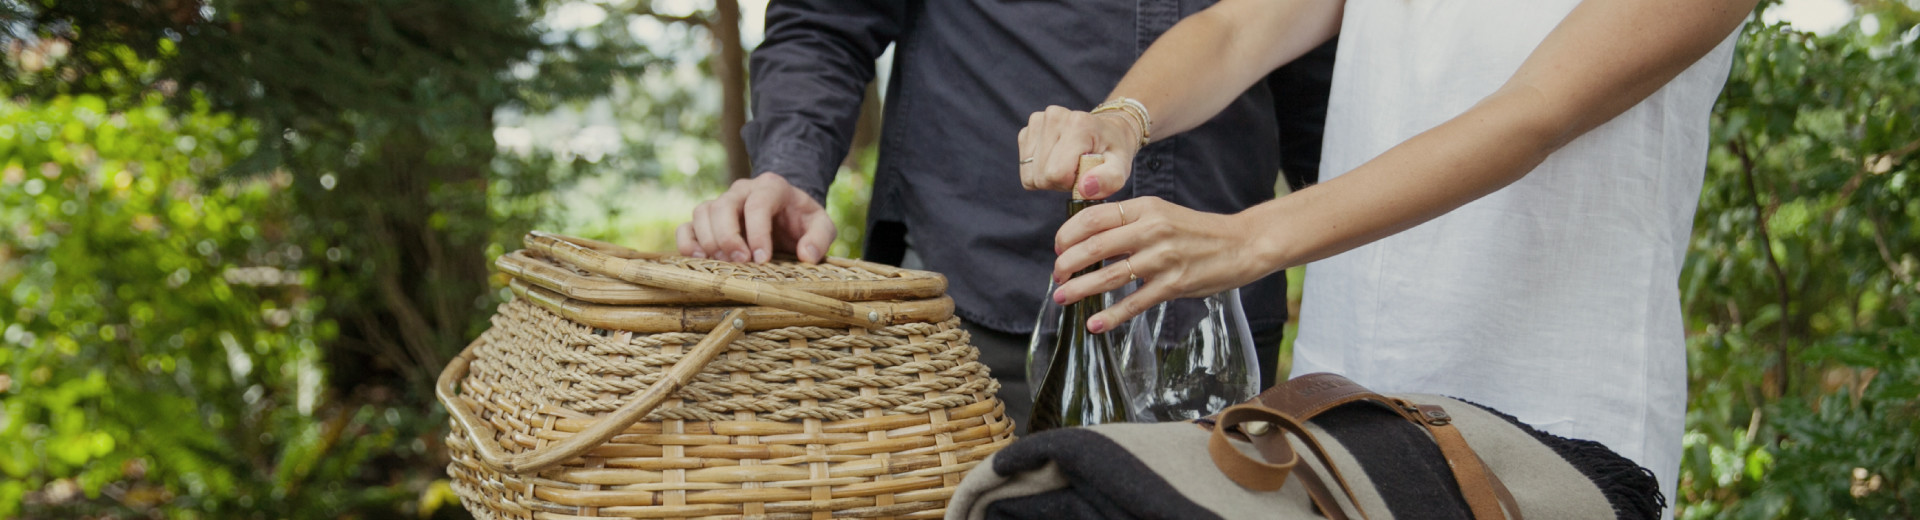 Atticus Hotel guests enjoy a picnic featuring a Willamette Valley Pinot noir.